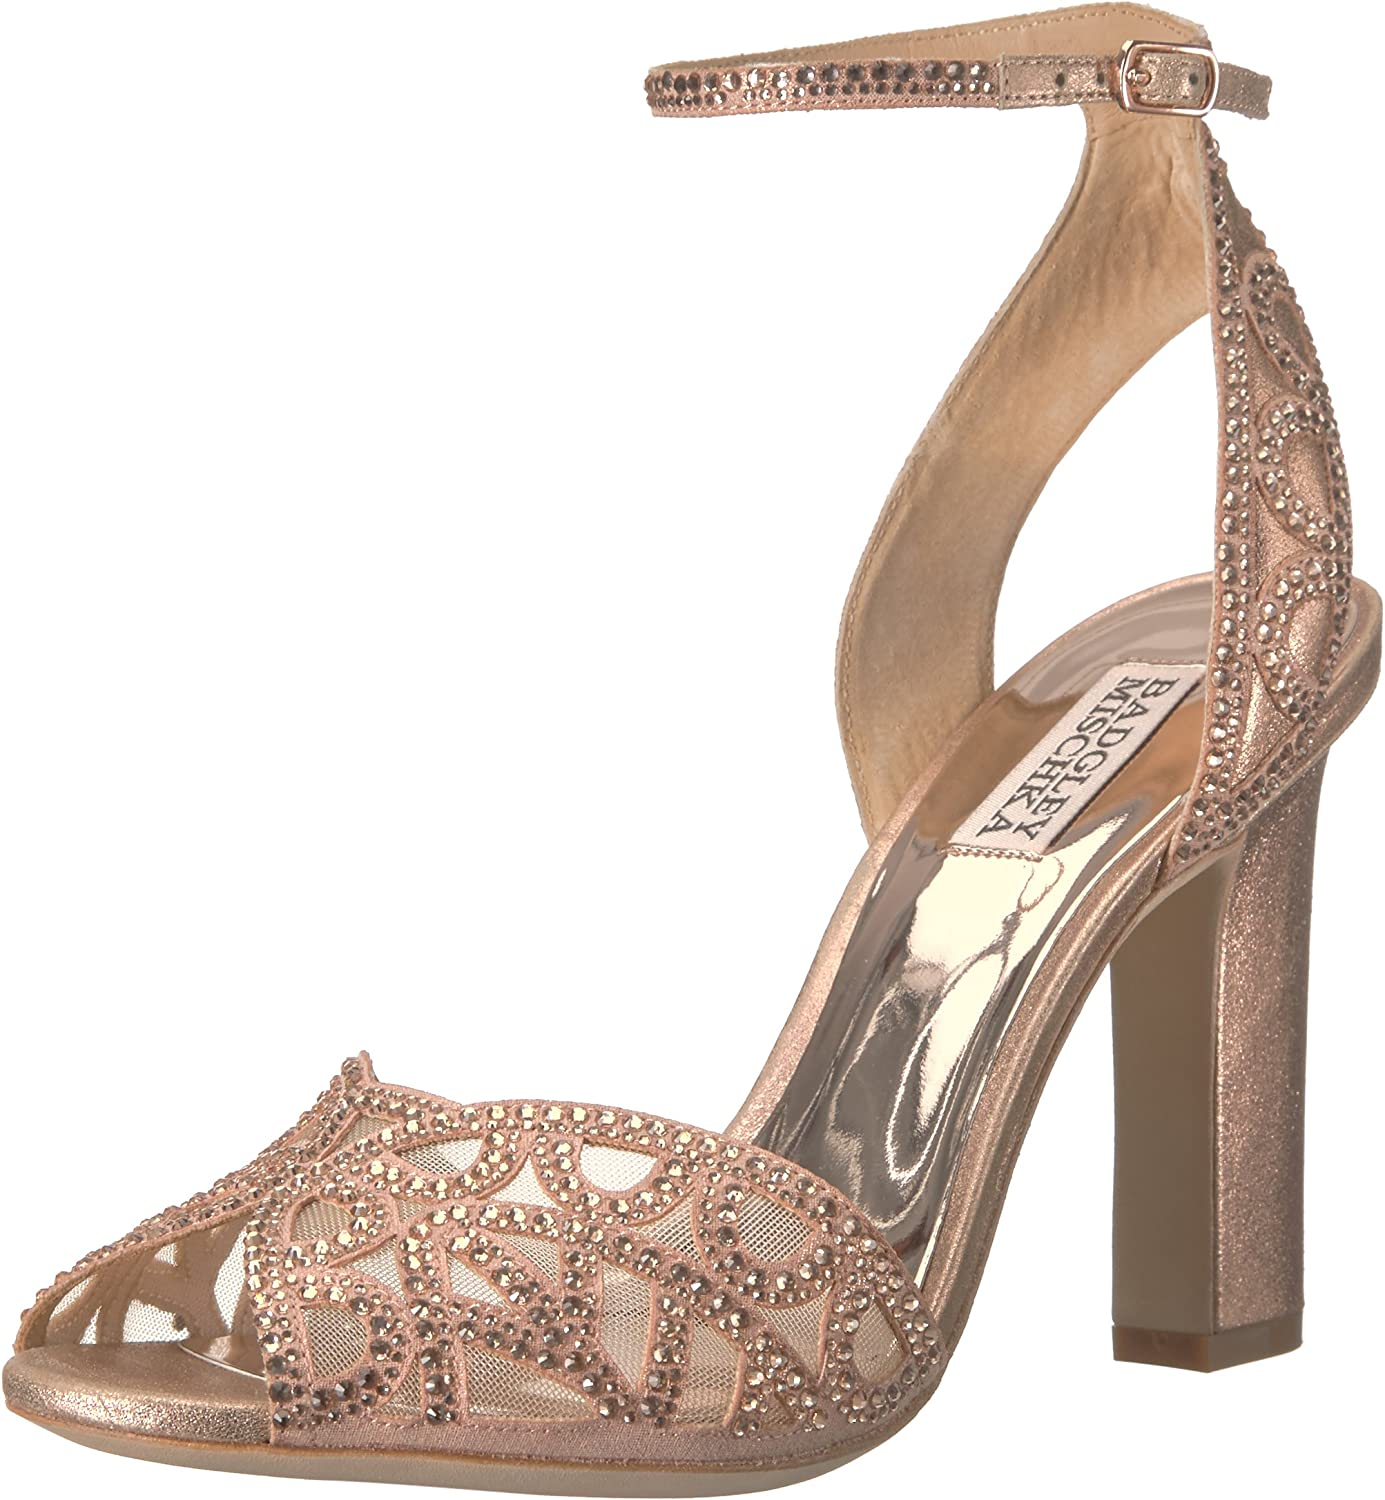 Badgley Mischka Womens Hart Heeled Sandal